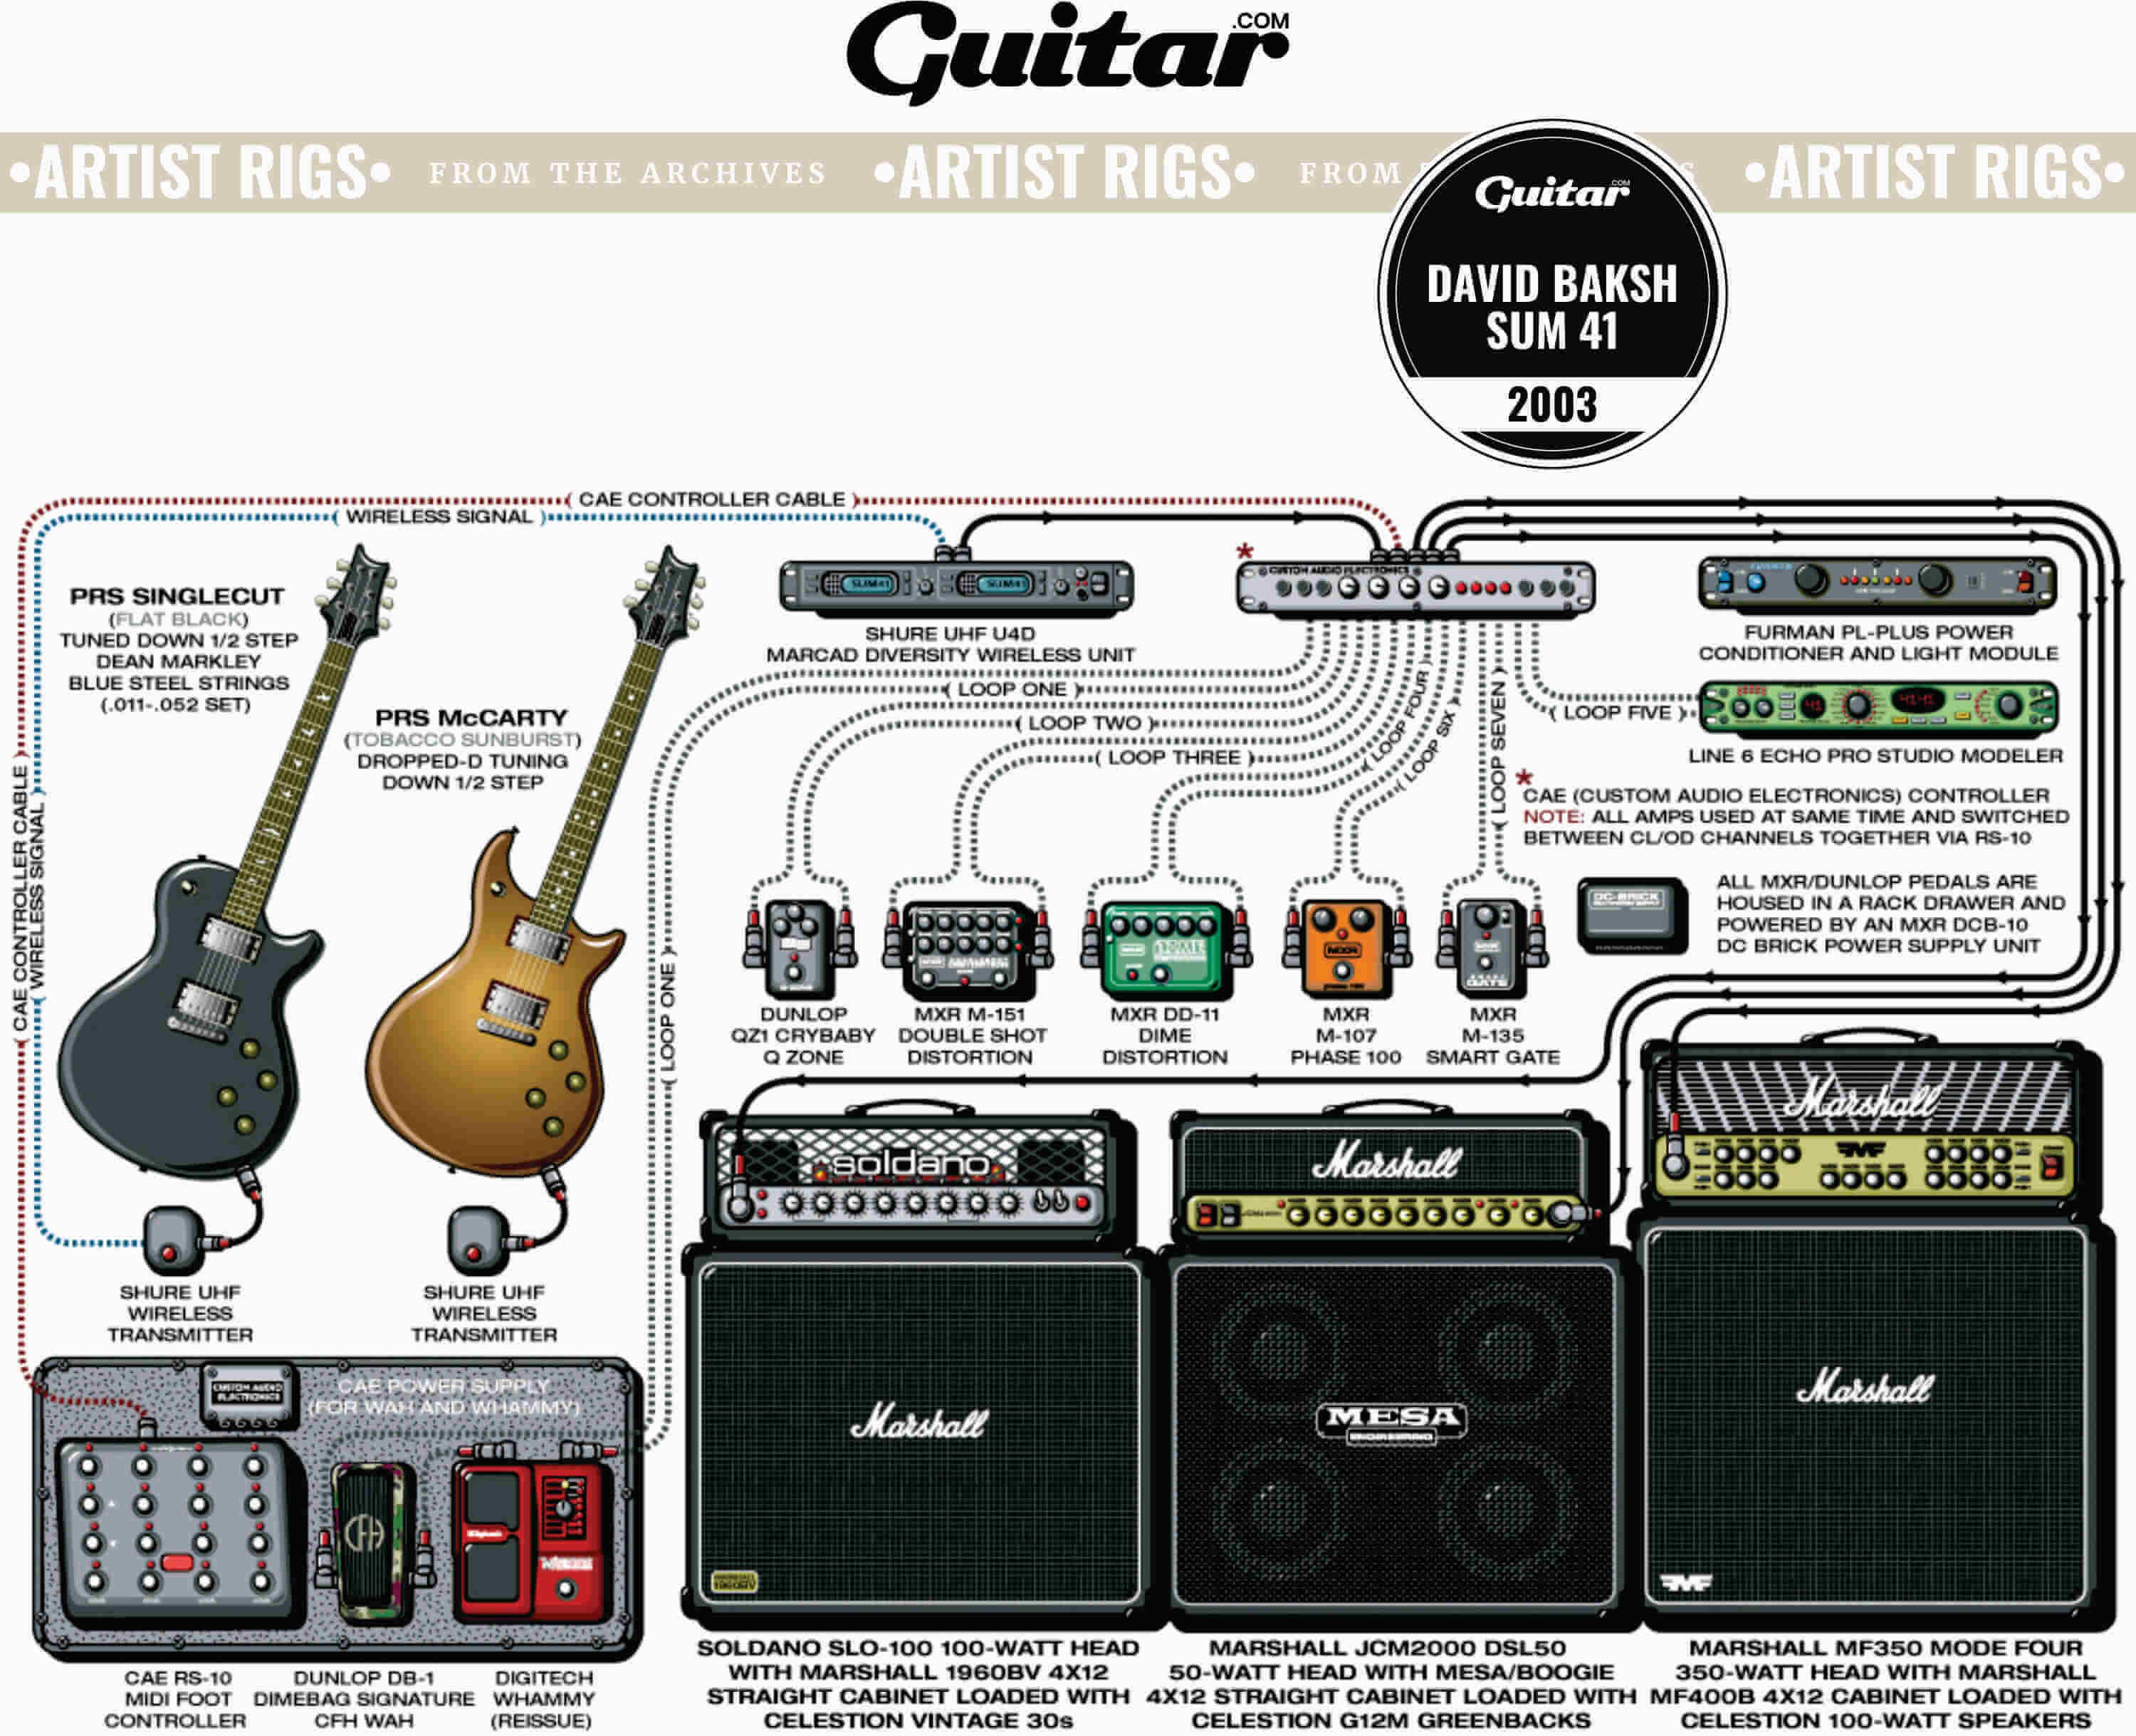 Rig Diagram: David Baksh, Sum 41 (2003)